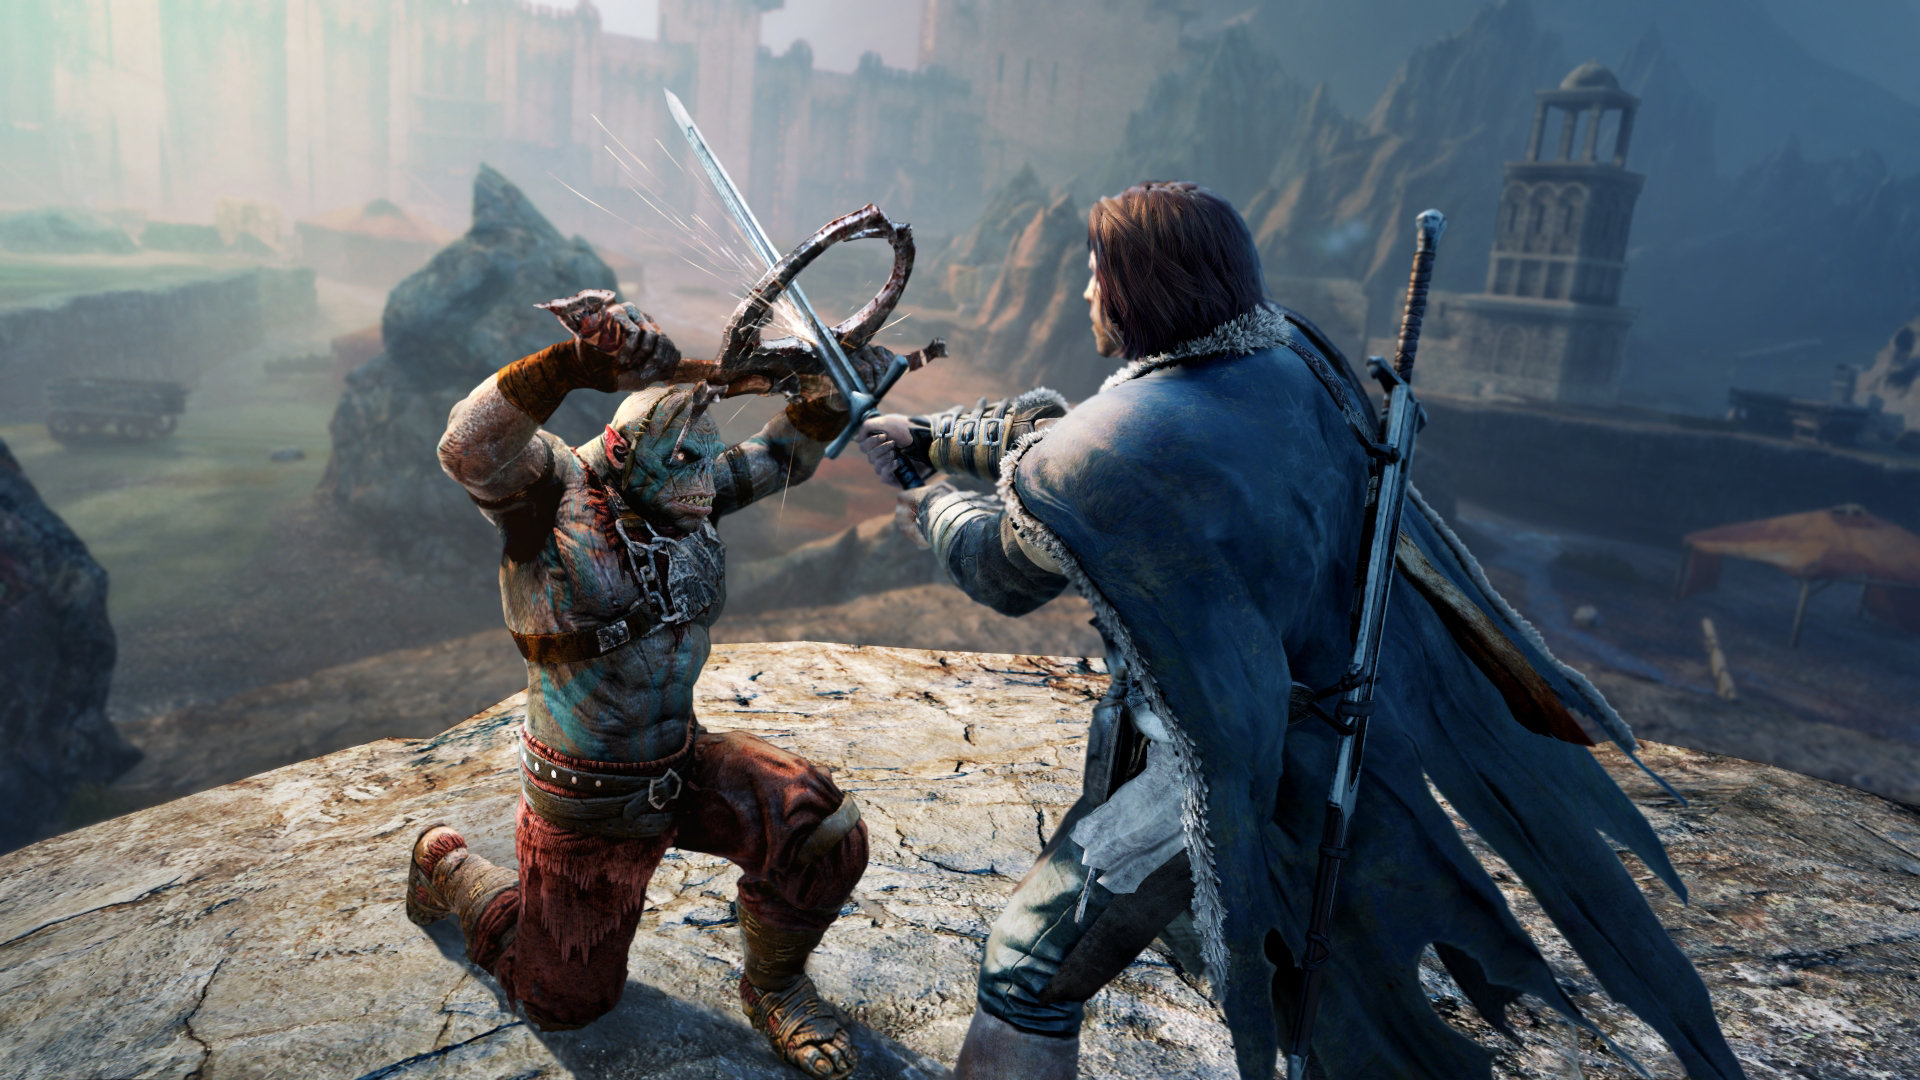 middle-earth-shadow-of-mordor-screen-03-us-26sep14